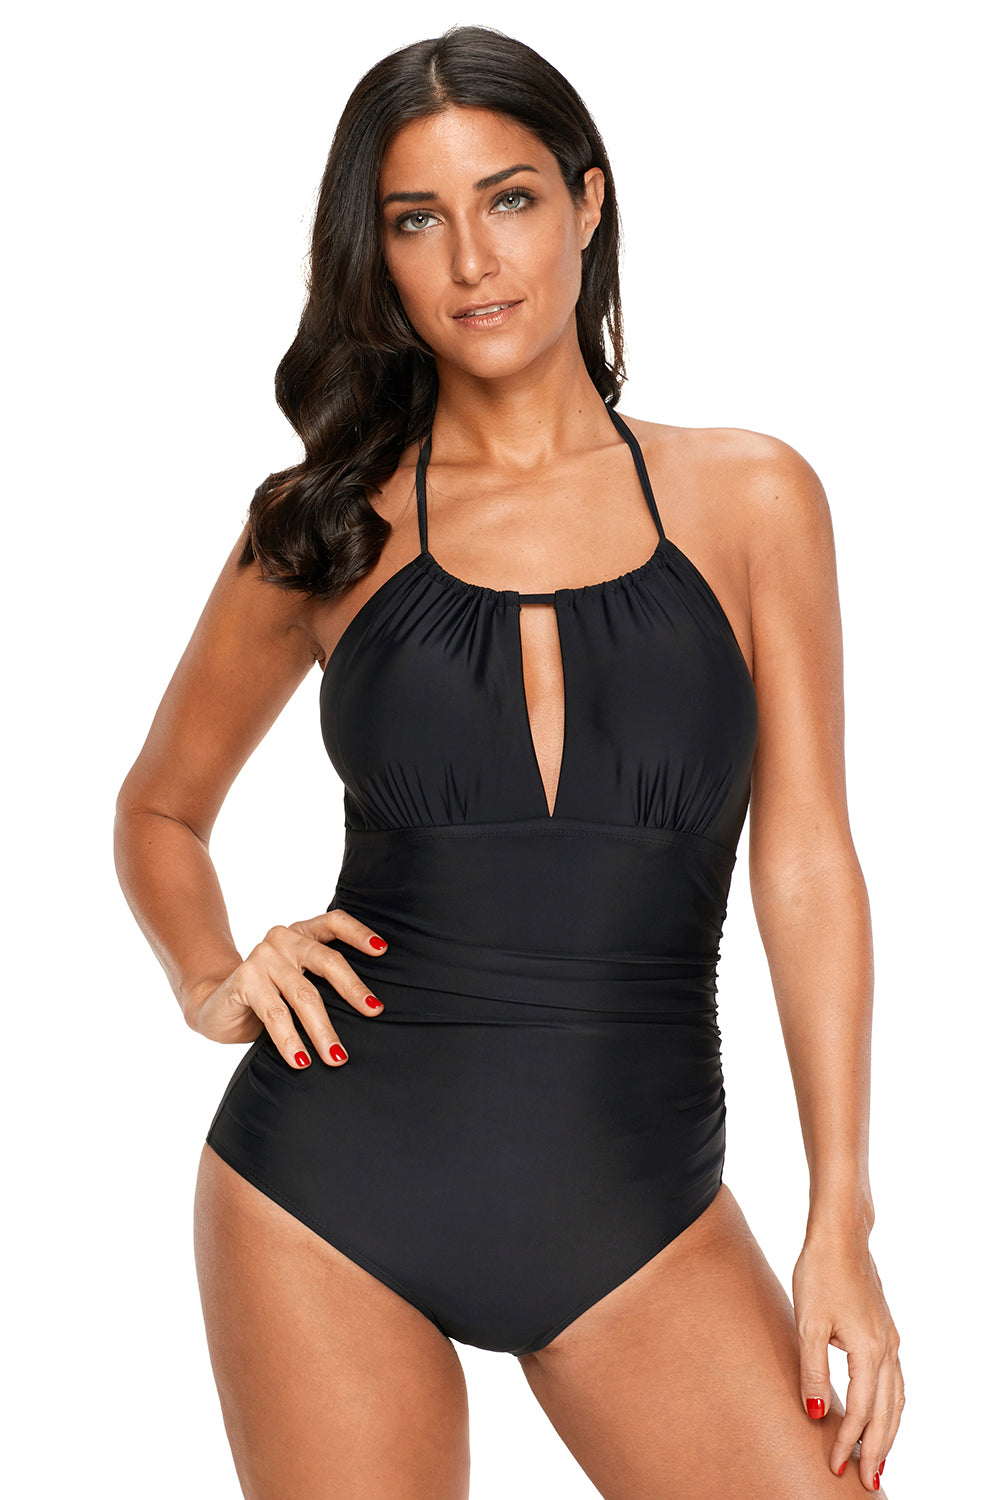 Black High Waisted Halter One-Piece Swimsuit One-Piece Swimwear Discount Designer Fashion Clothes Shoes Bags Women Men Kids Children Black Owned Business